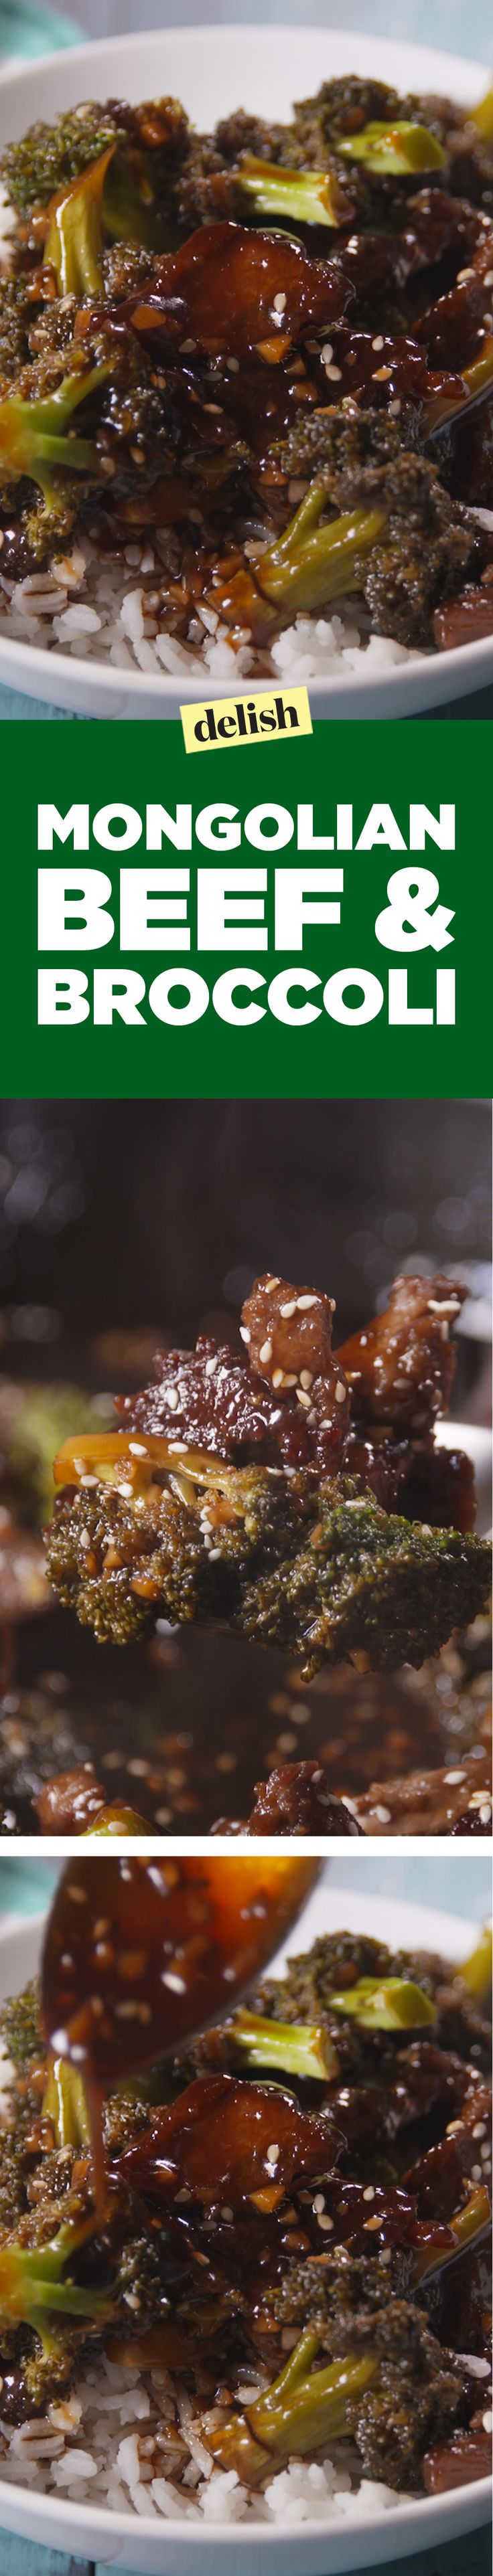 Mongolian beef and broccoli puts takeout to shame. Get the recipe on Delish.com.